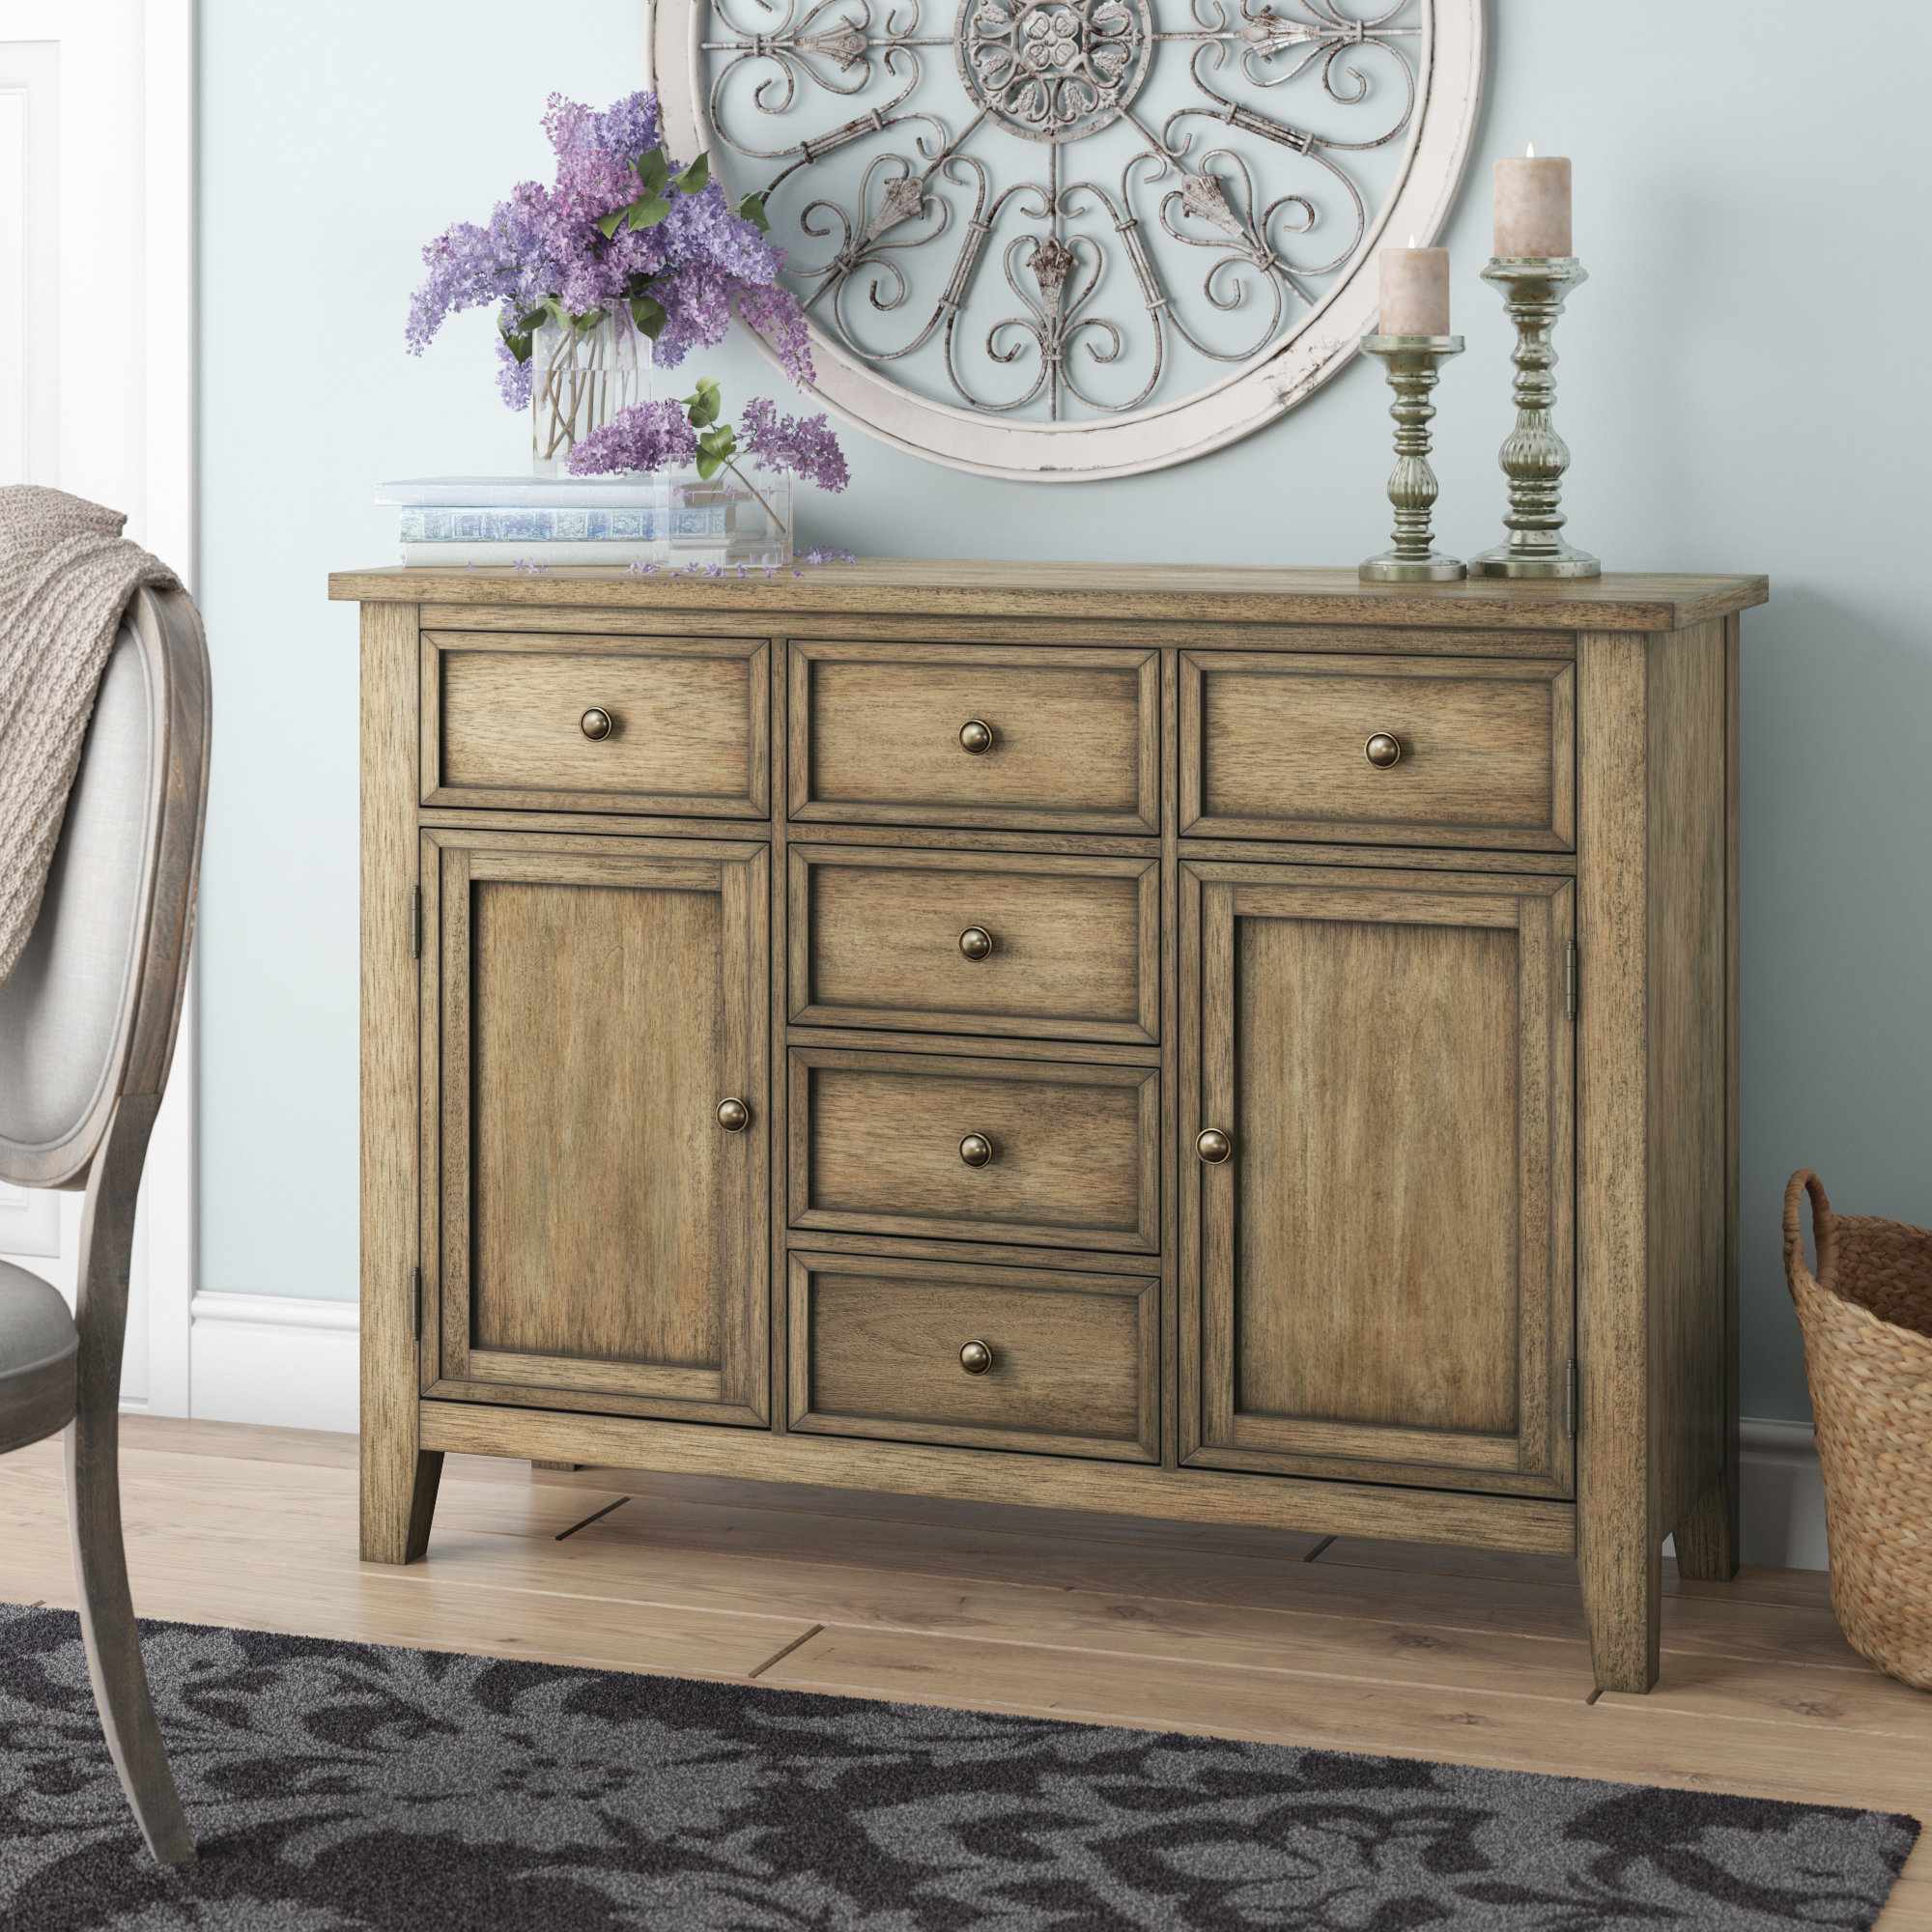 Distressed Finish Grey Sideboards & Buffets You'll Love In Regarding Cazenovia Charnley Sideboards (View 7 of 20)